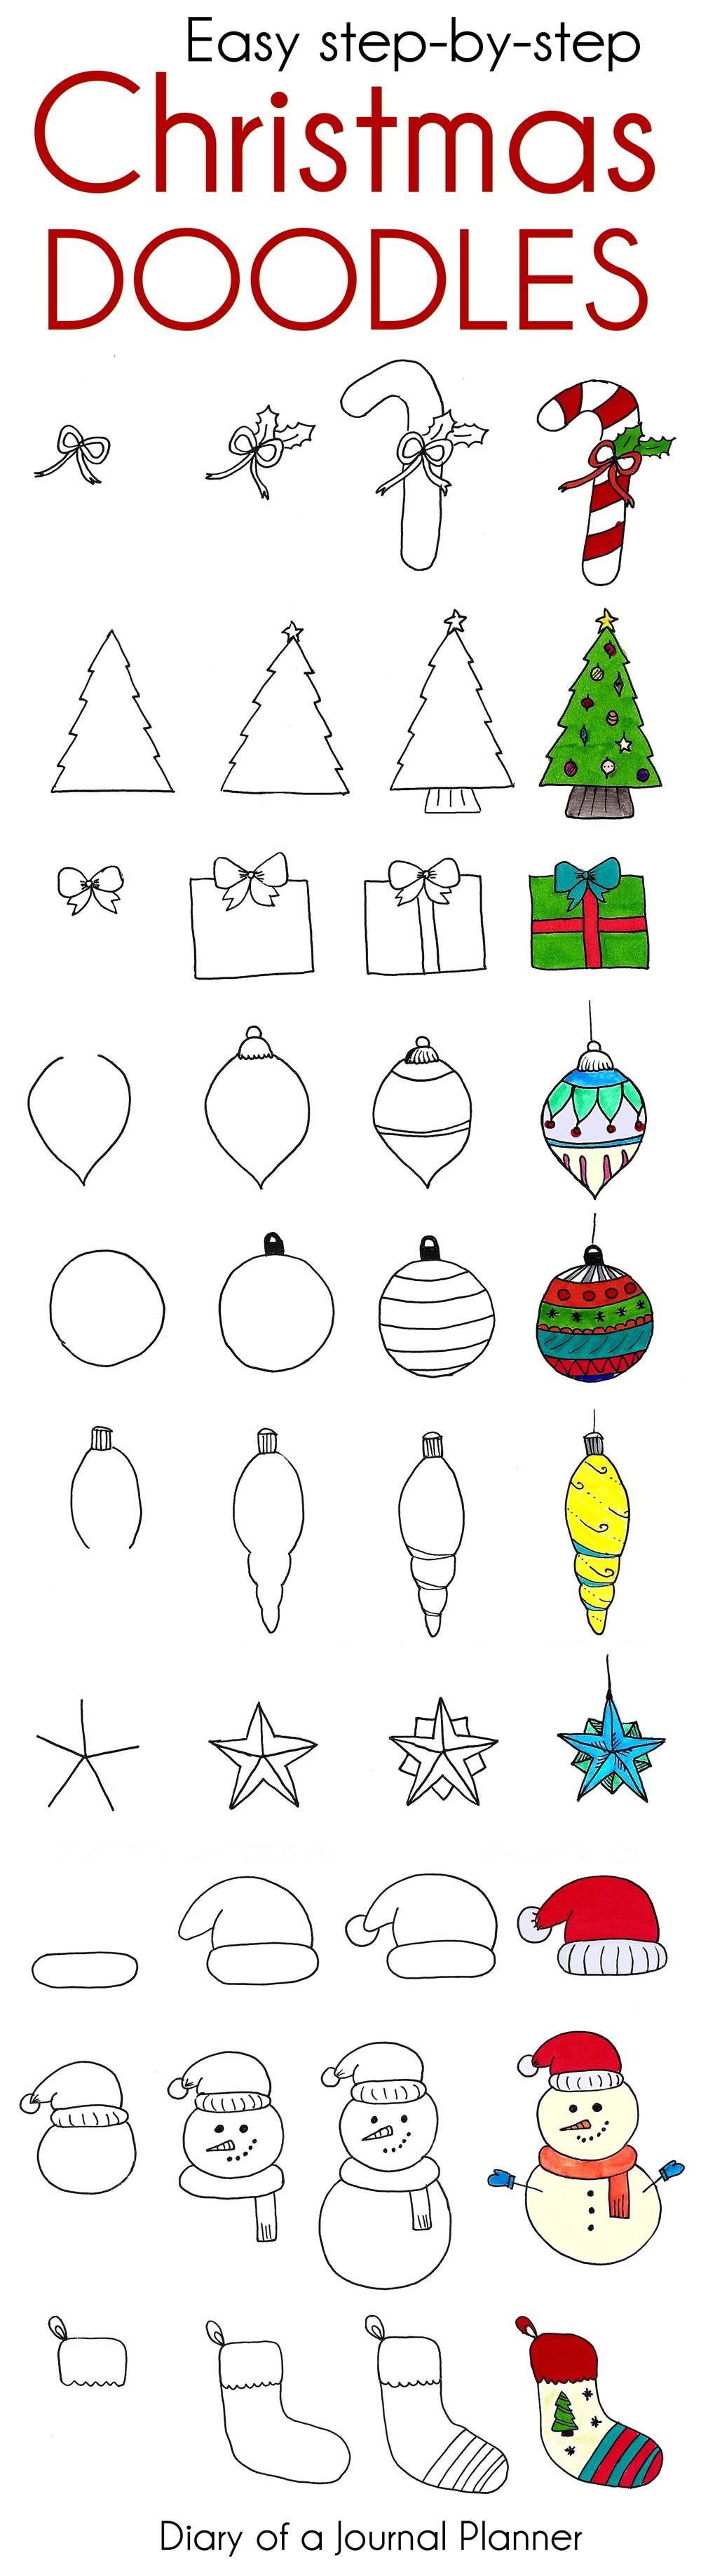 Cute Christmas doodles for your bullet journal or Christmas cards